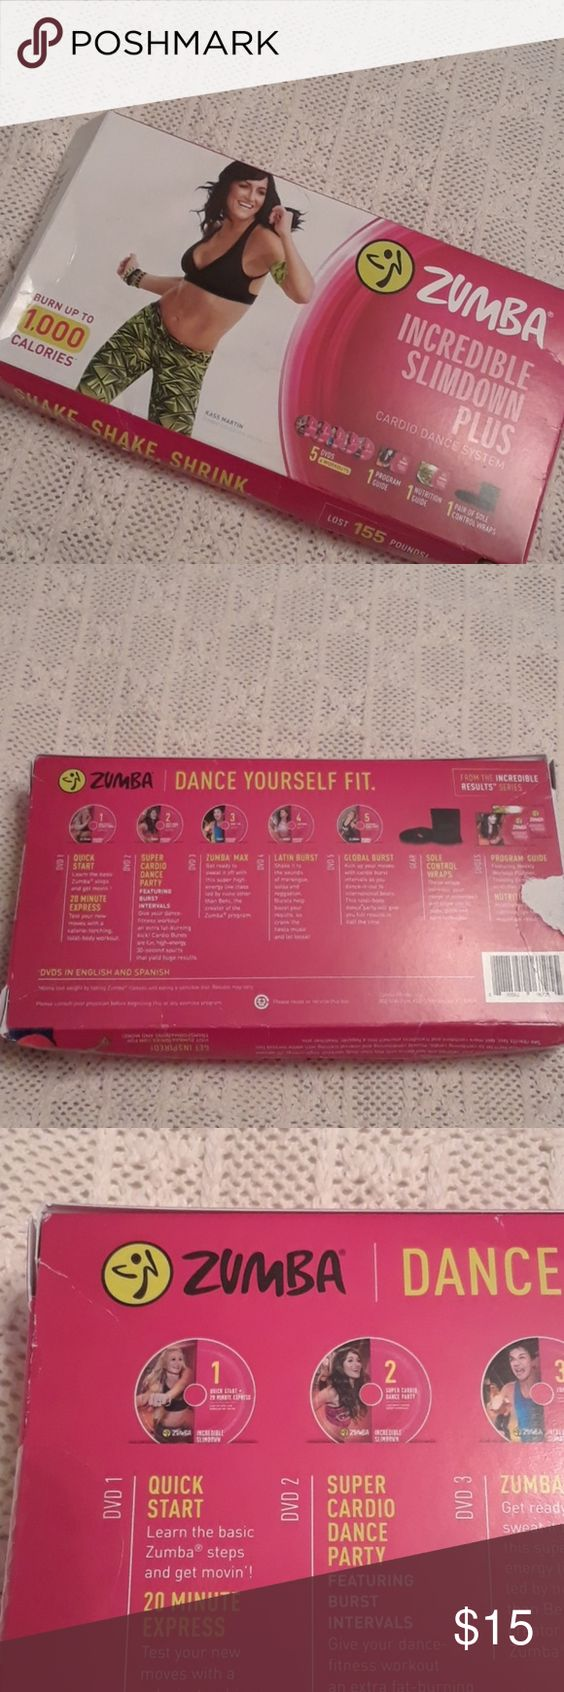 ZUMBA FITNESS DVDs Four dvd in the set. Includes Incredible Slim down Nutrition Guide. Used the first DVD only once. Other